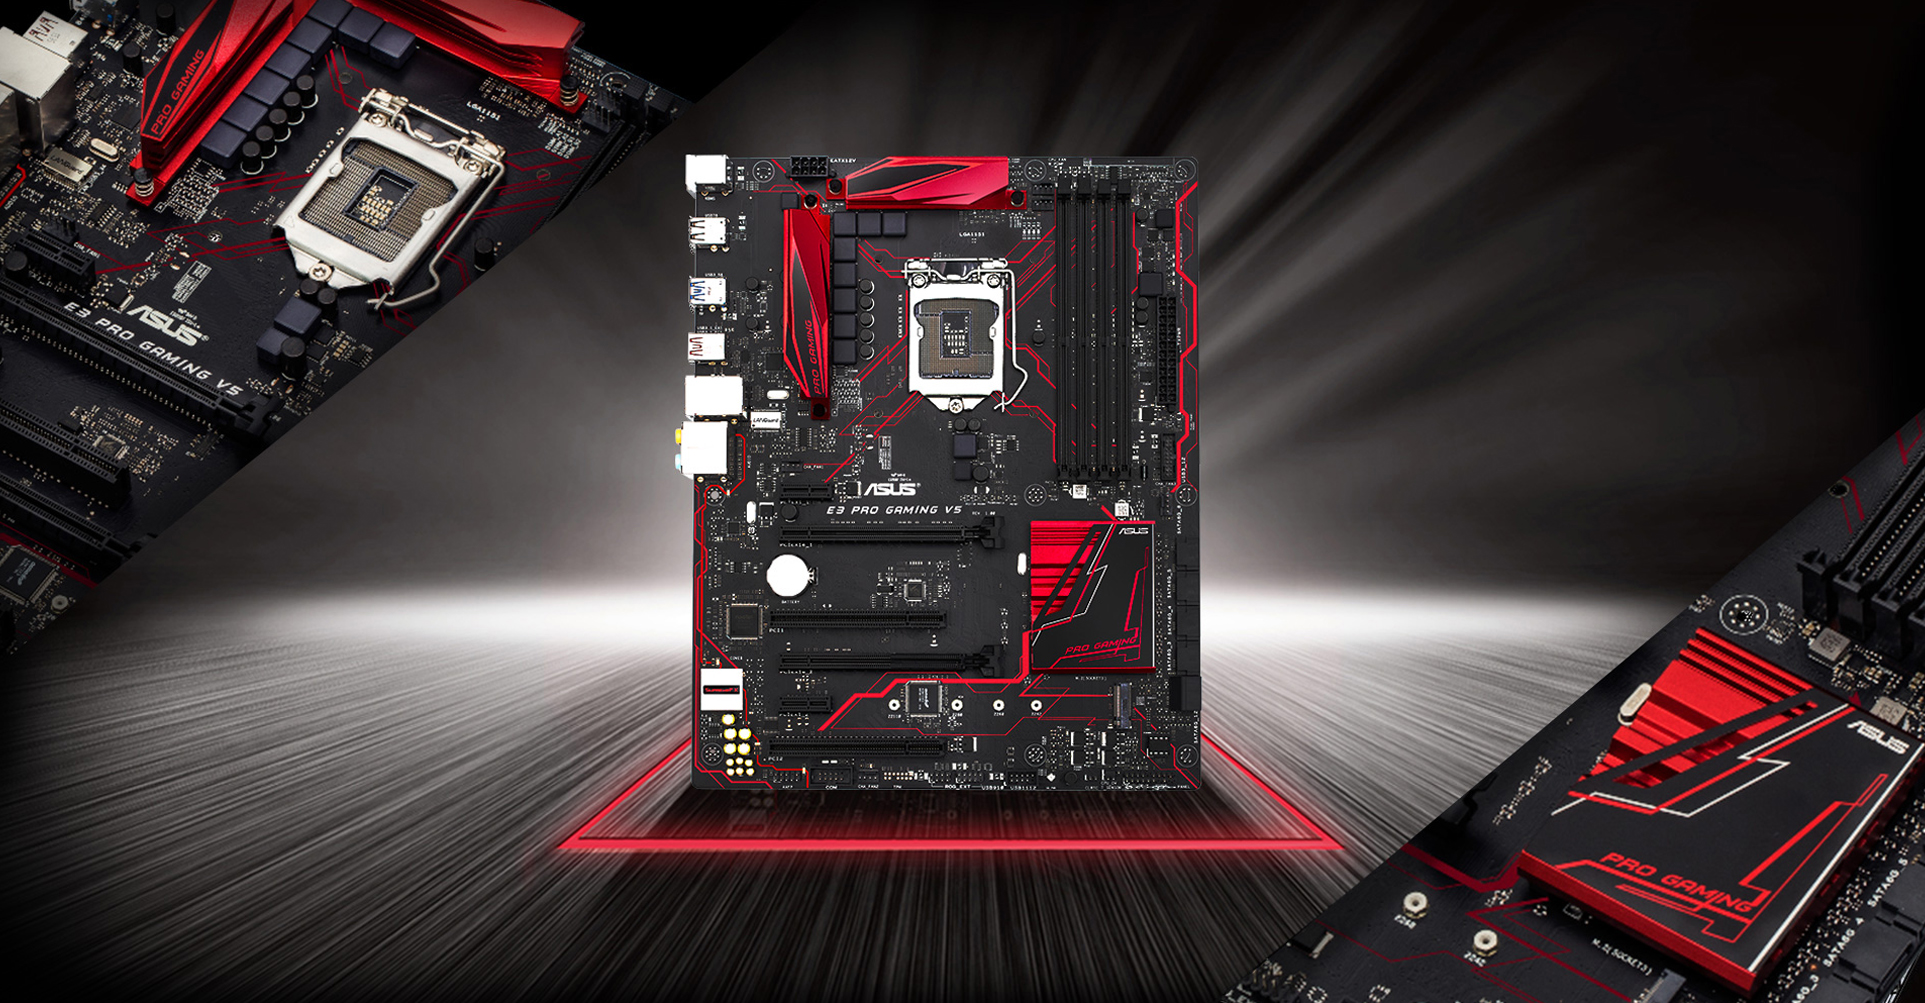 E3 PRO GAMING V5 | Motherboards | ASUS USA